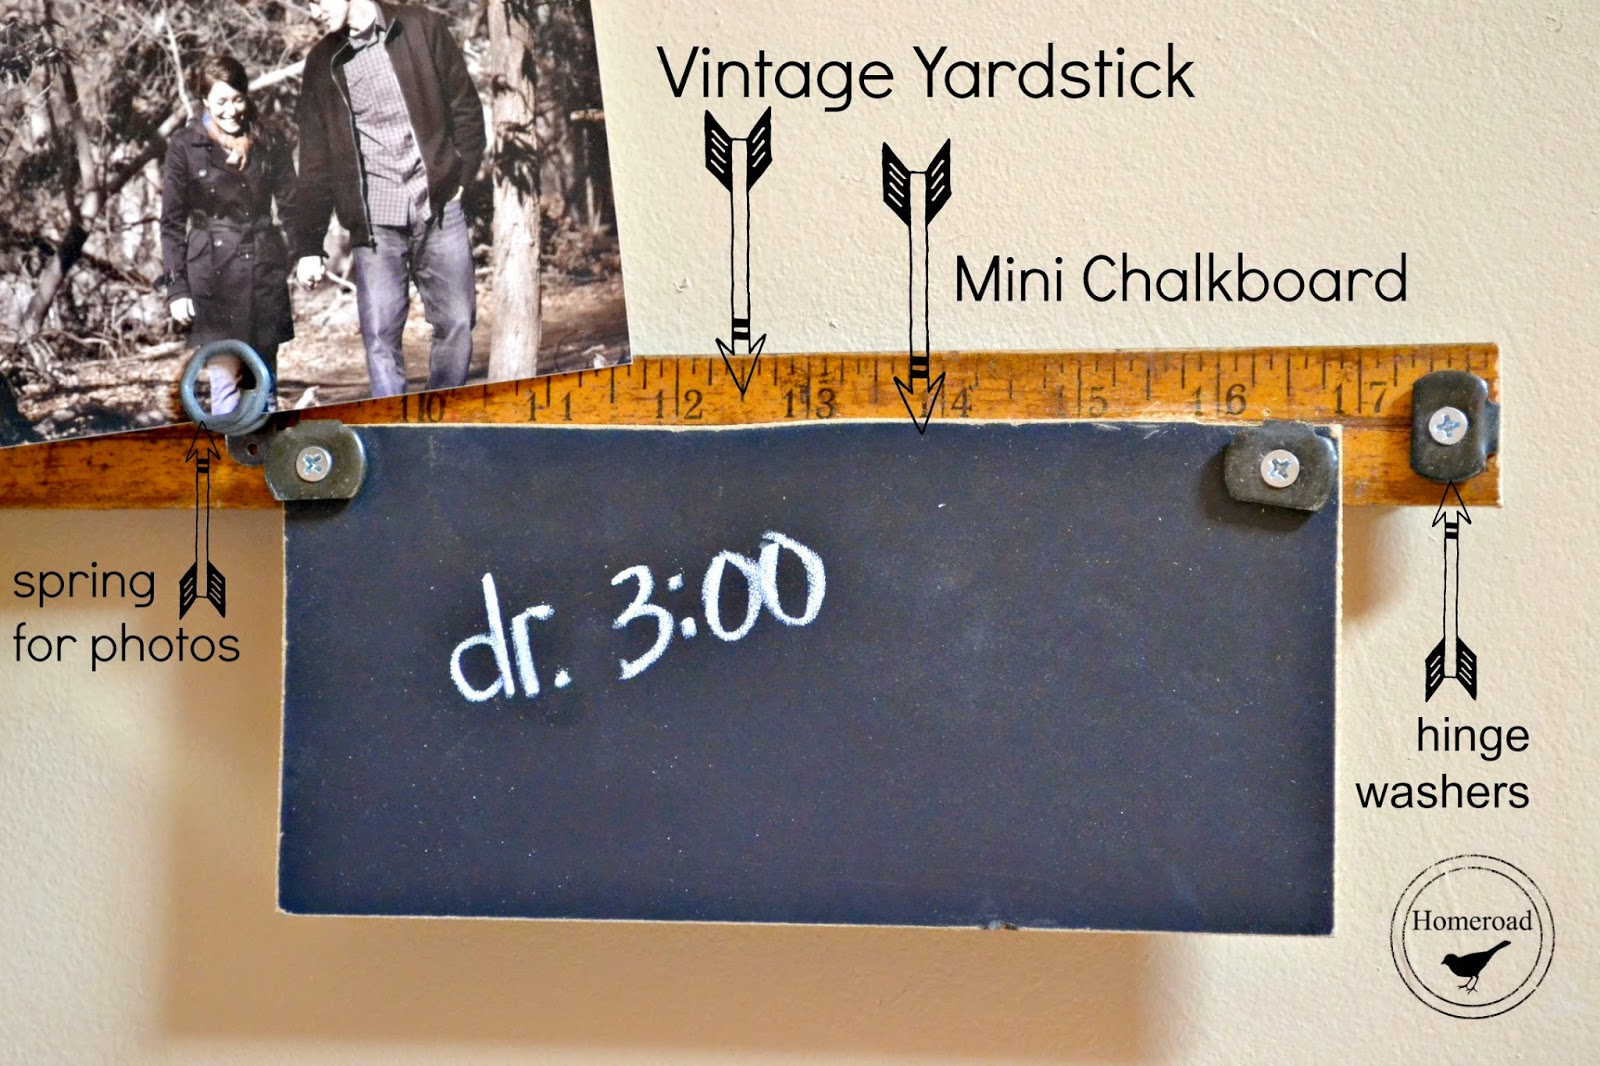 DIY Vintage yardstick message center for a small area